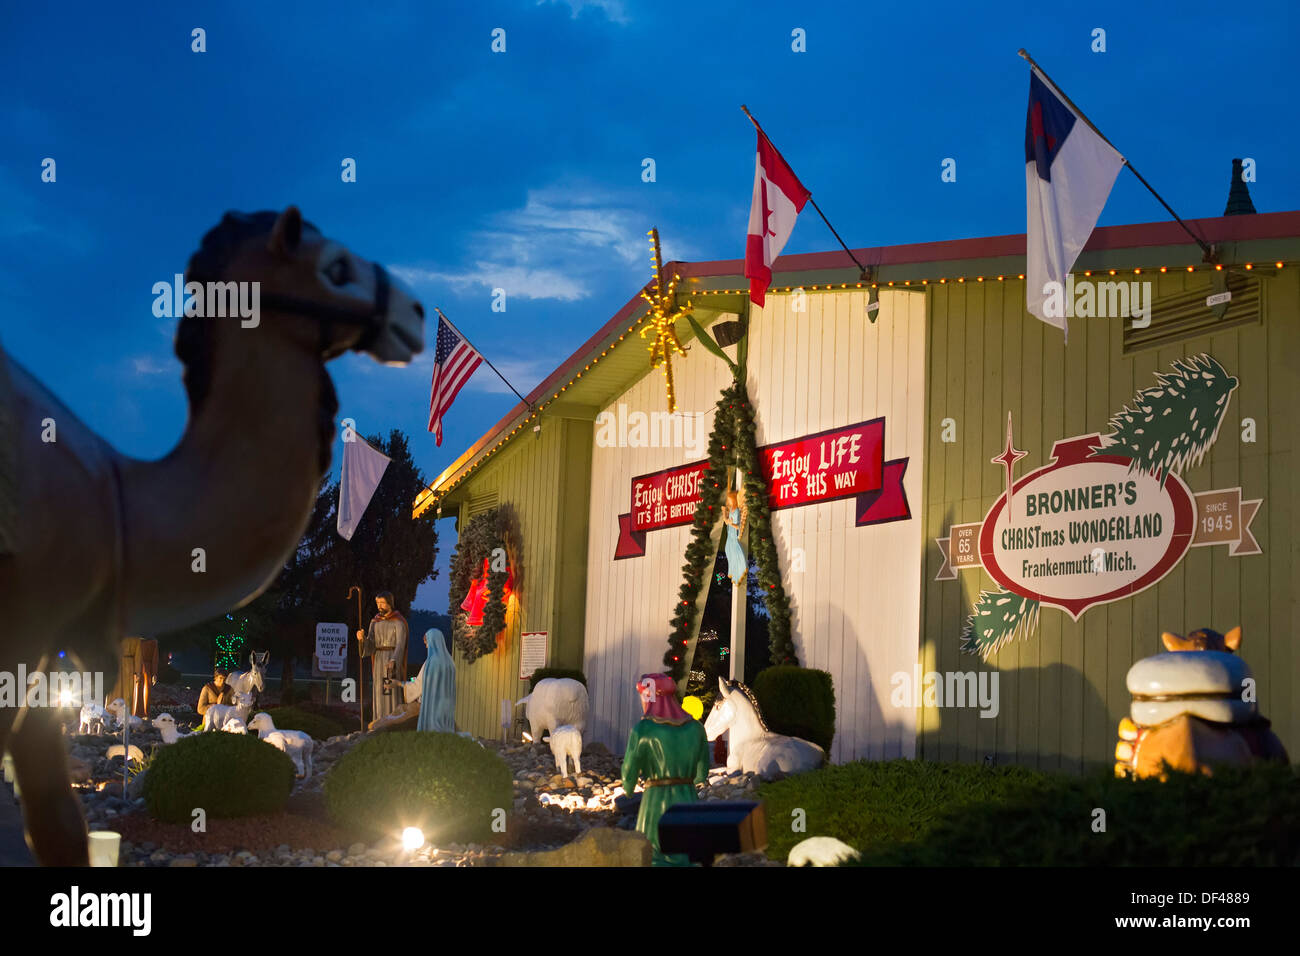 Frankenmuth, Michigan - Bronner's Christmas Wonderland, the ...